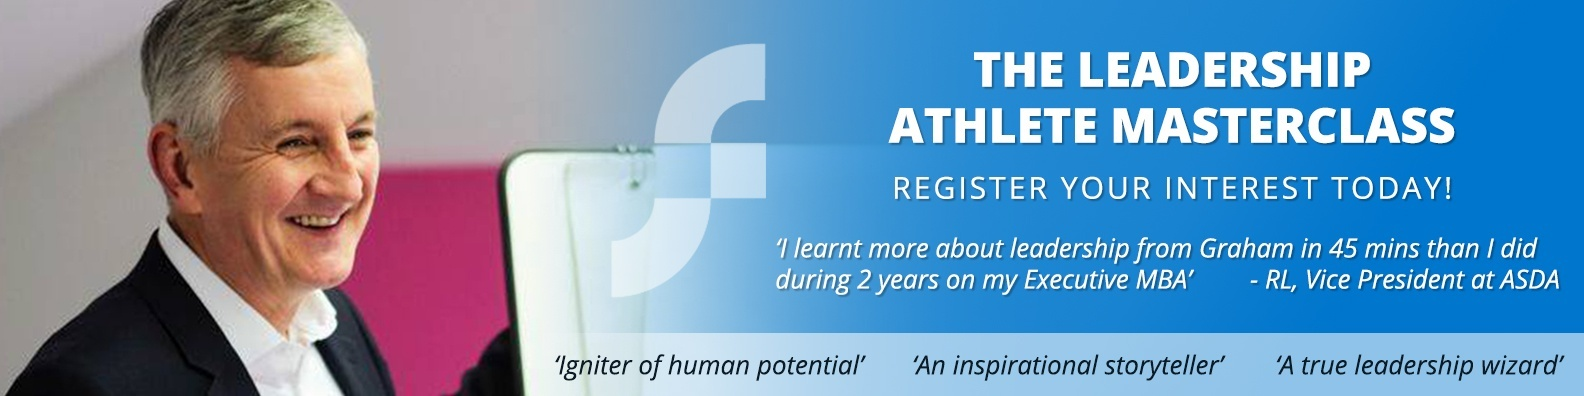 Register Interest for the next Leadership Athlete Masterclass